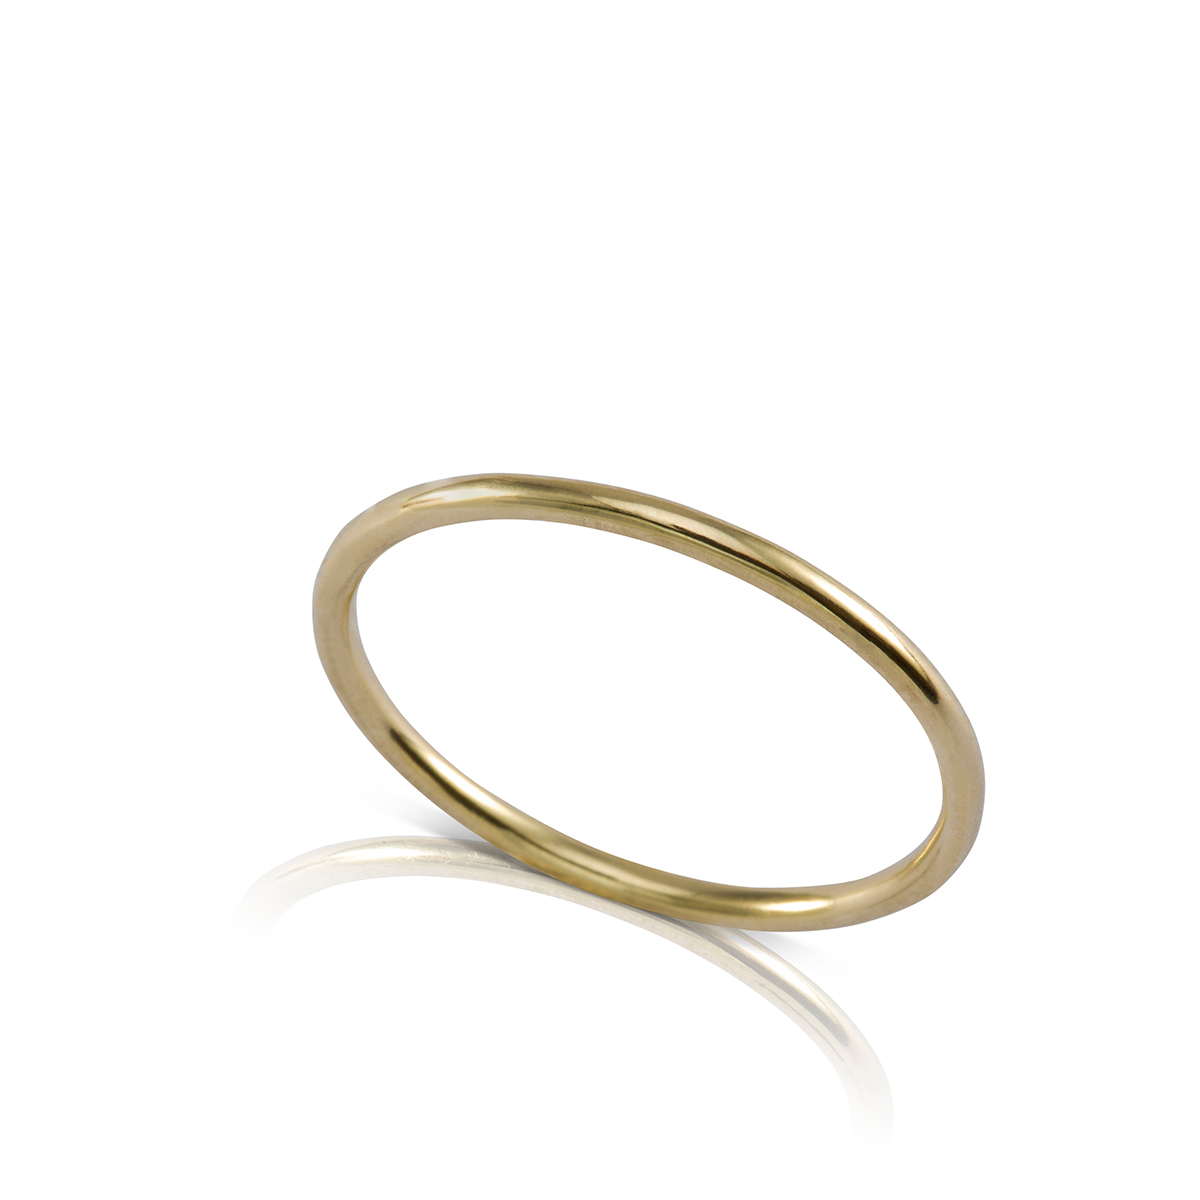 A thin round gold ring